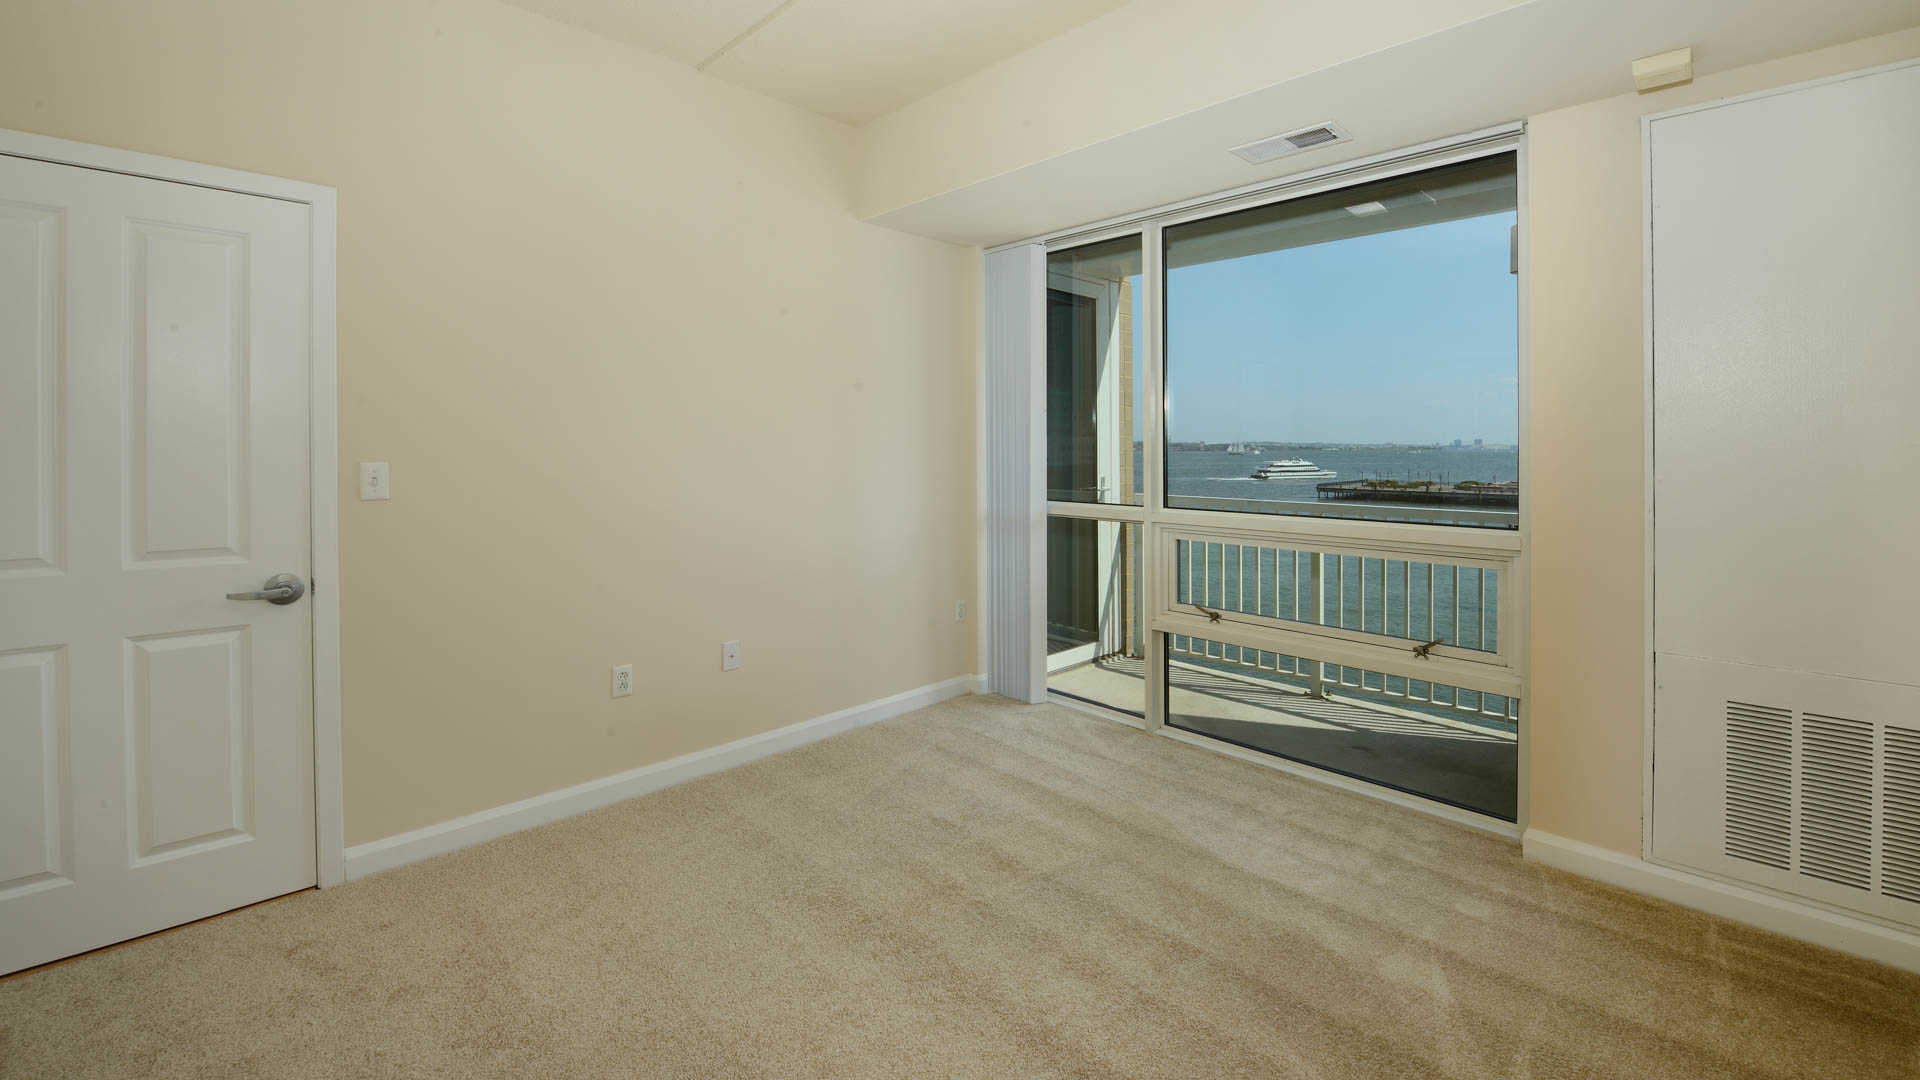 Carpeted Living Room with Balcony